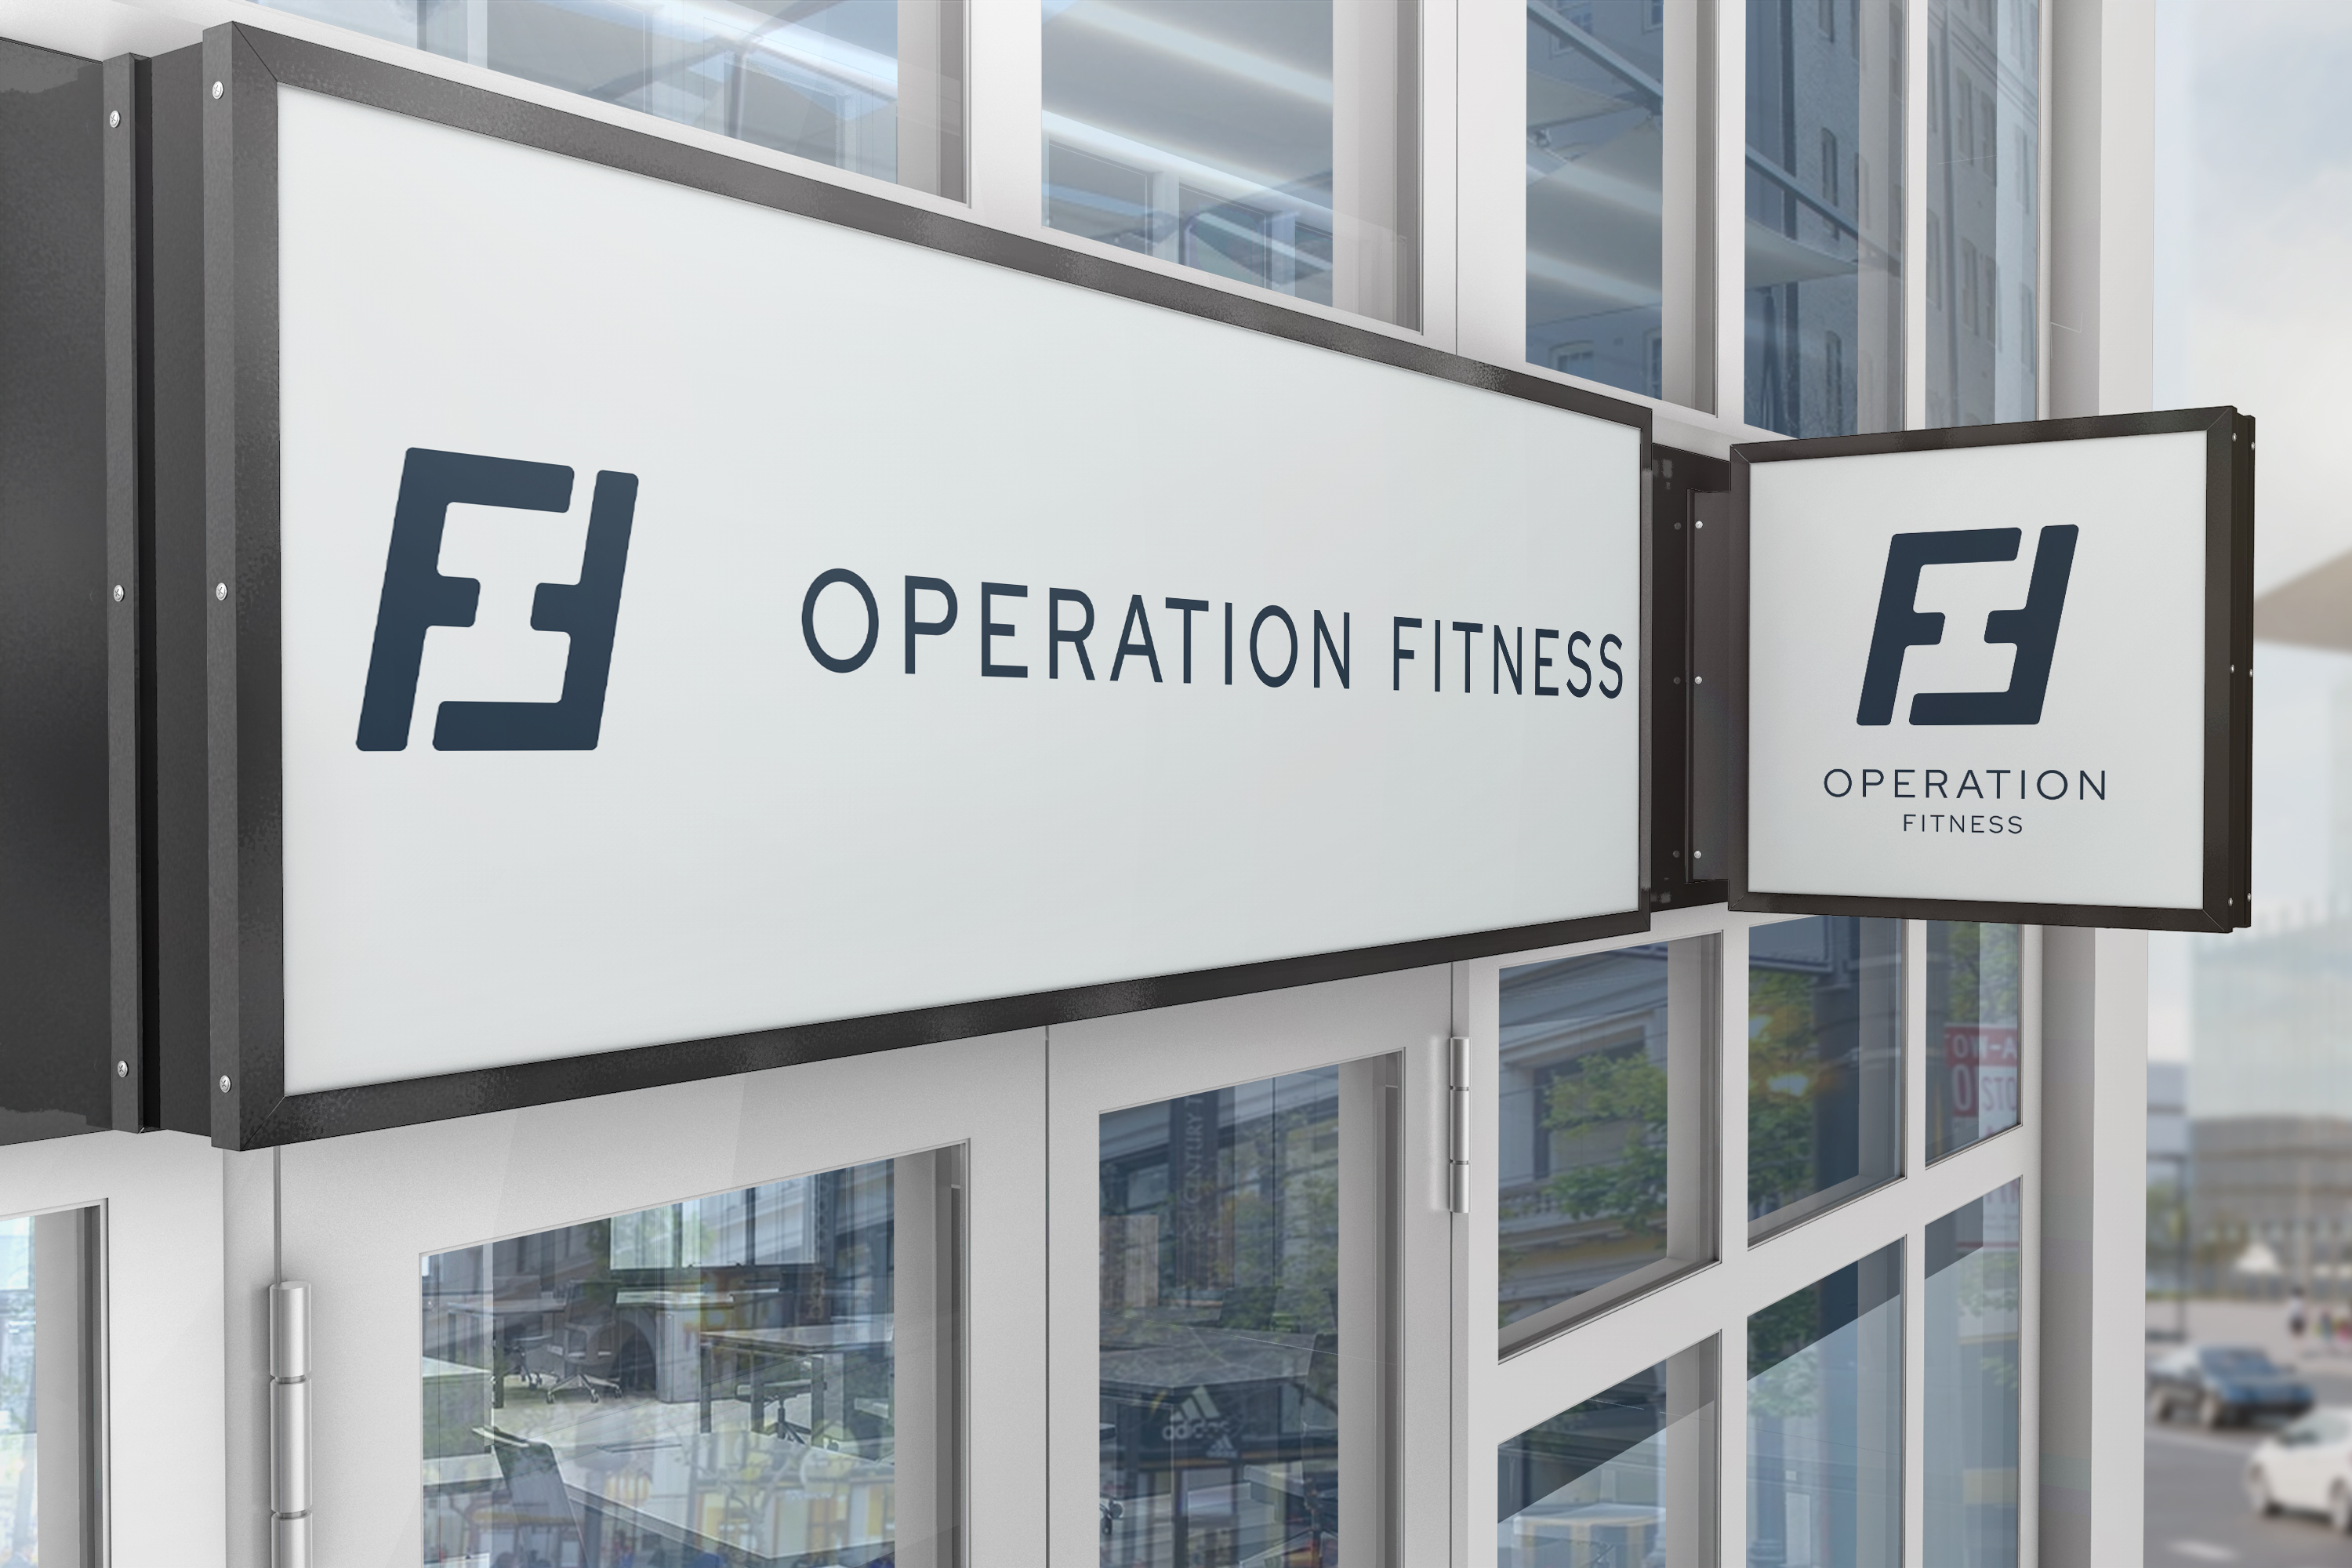 The Operation Fitness sign